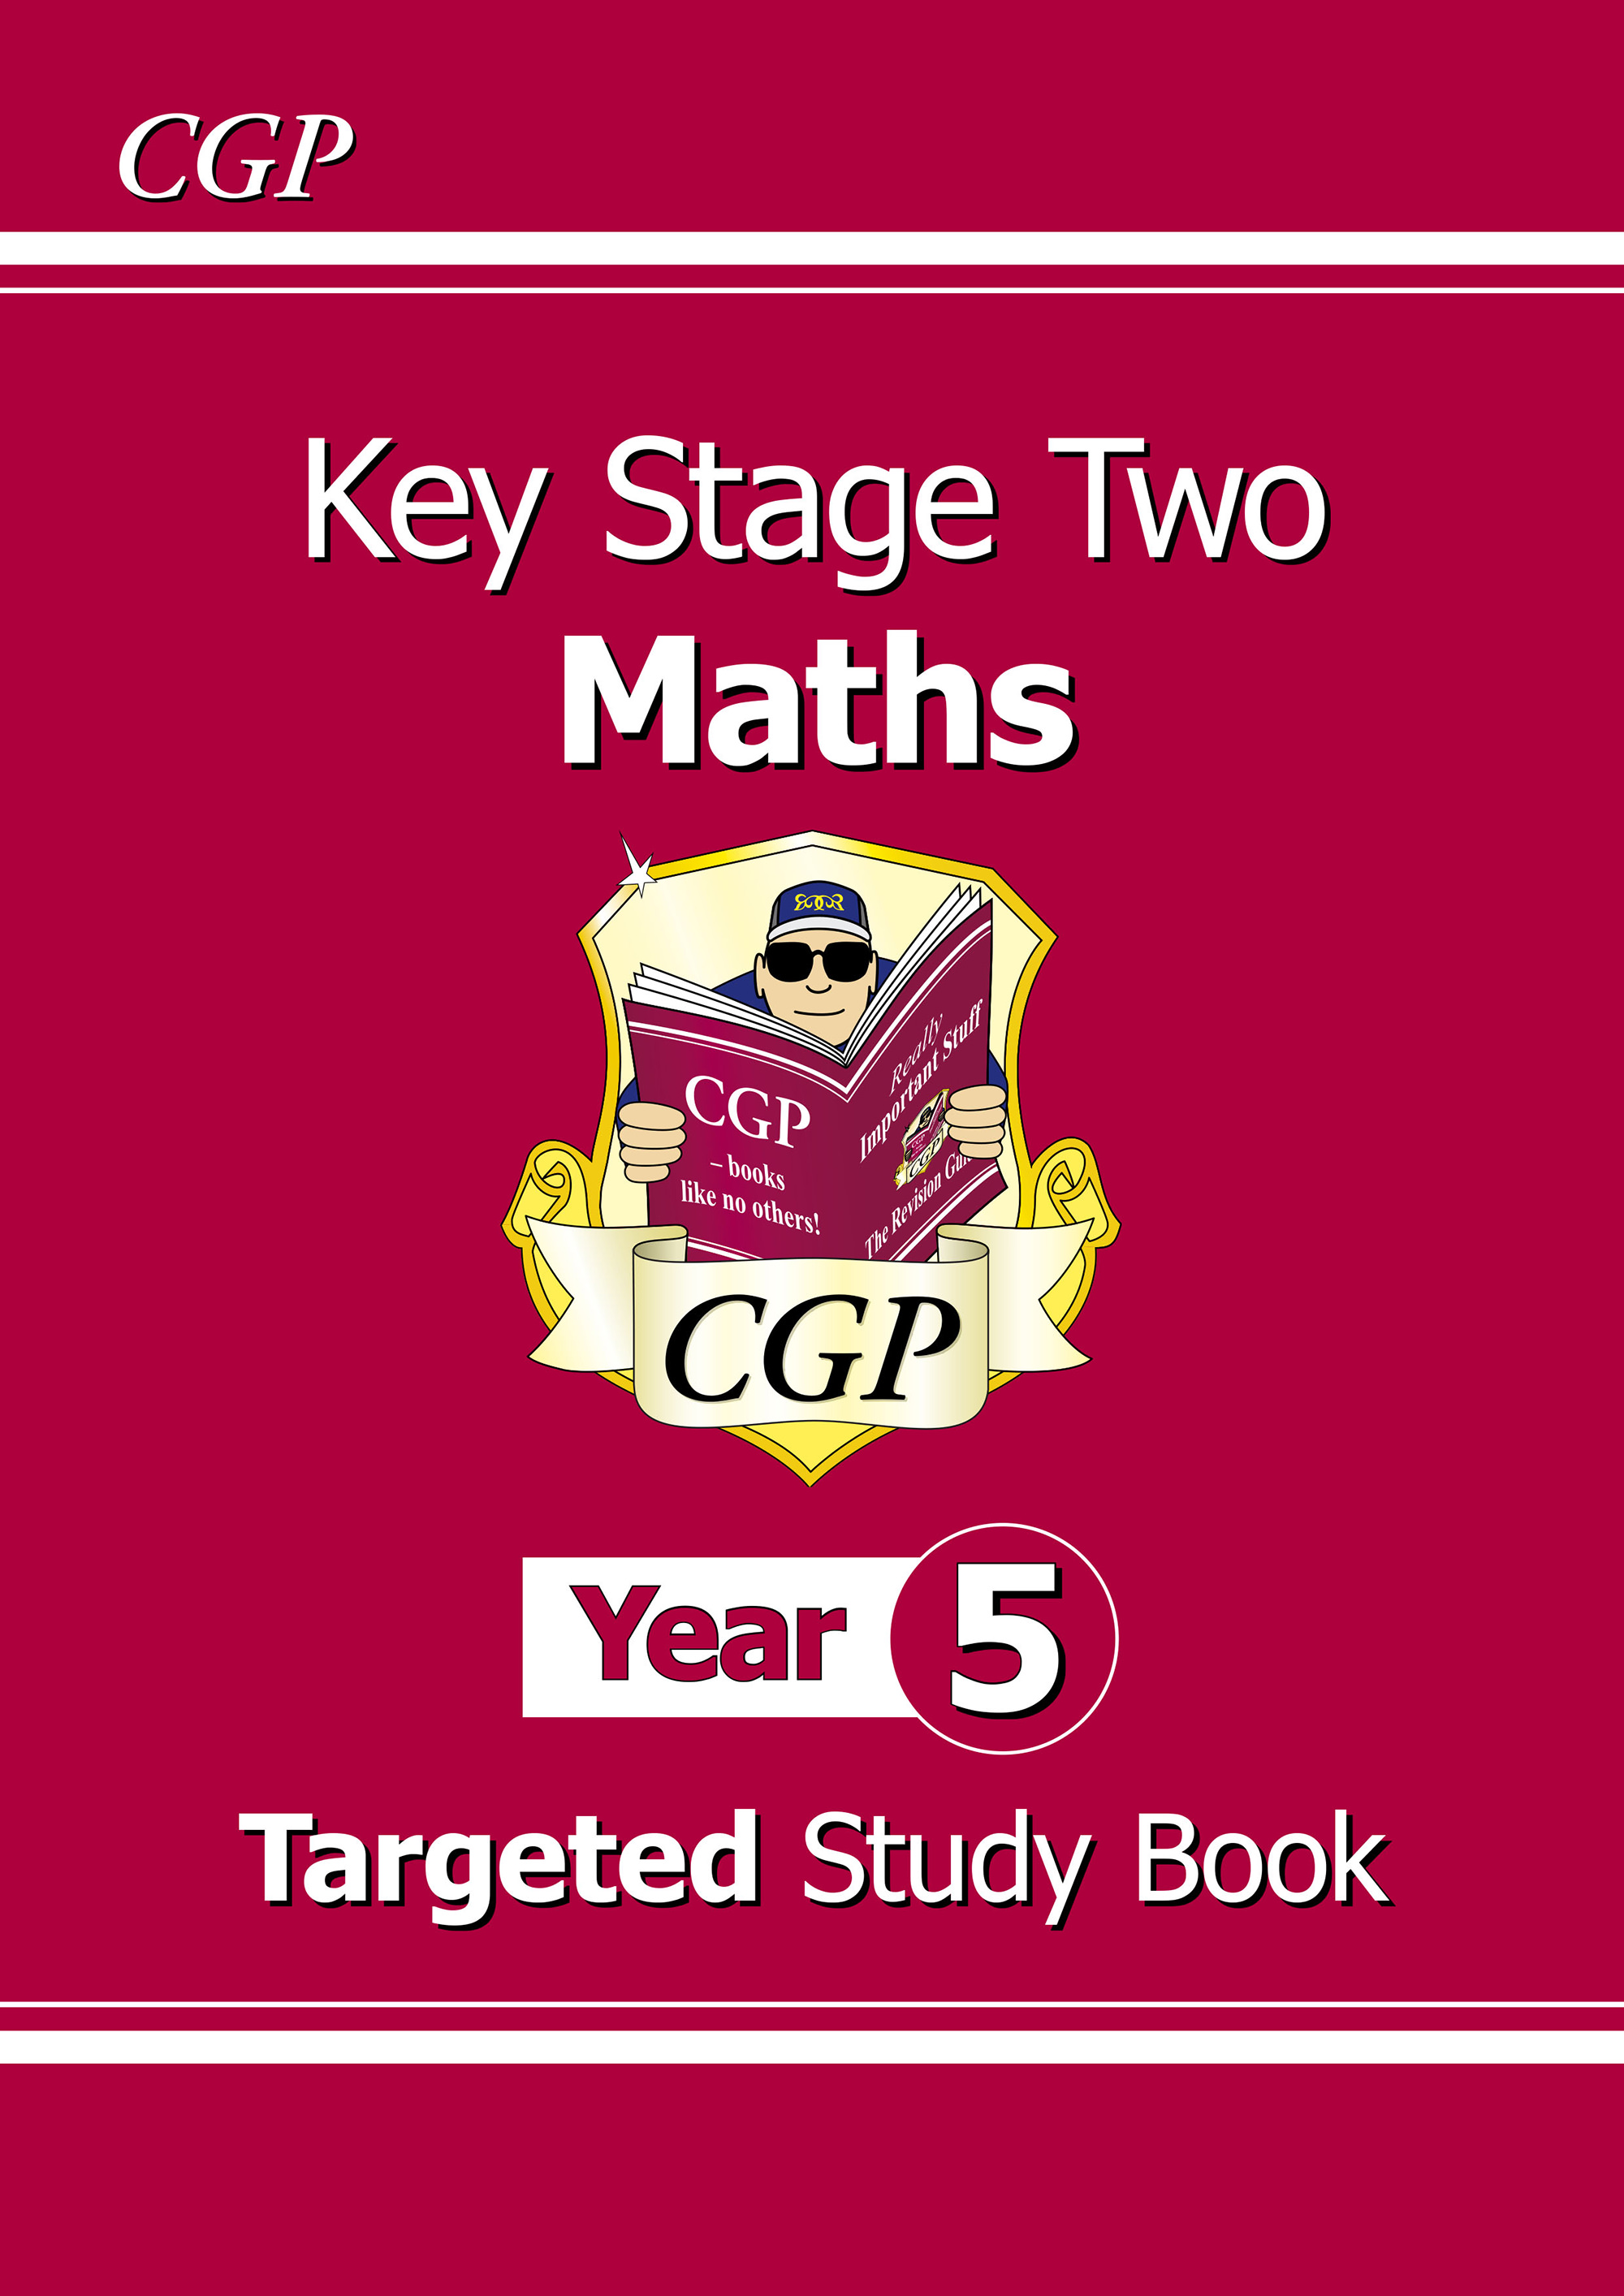 M5R23D - KS2 Maths Targeted Study Book - Year 5 Online Edition